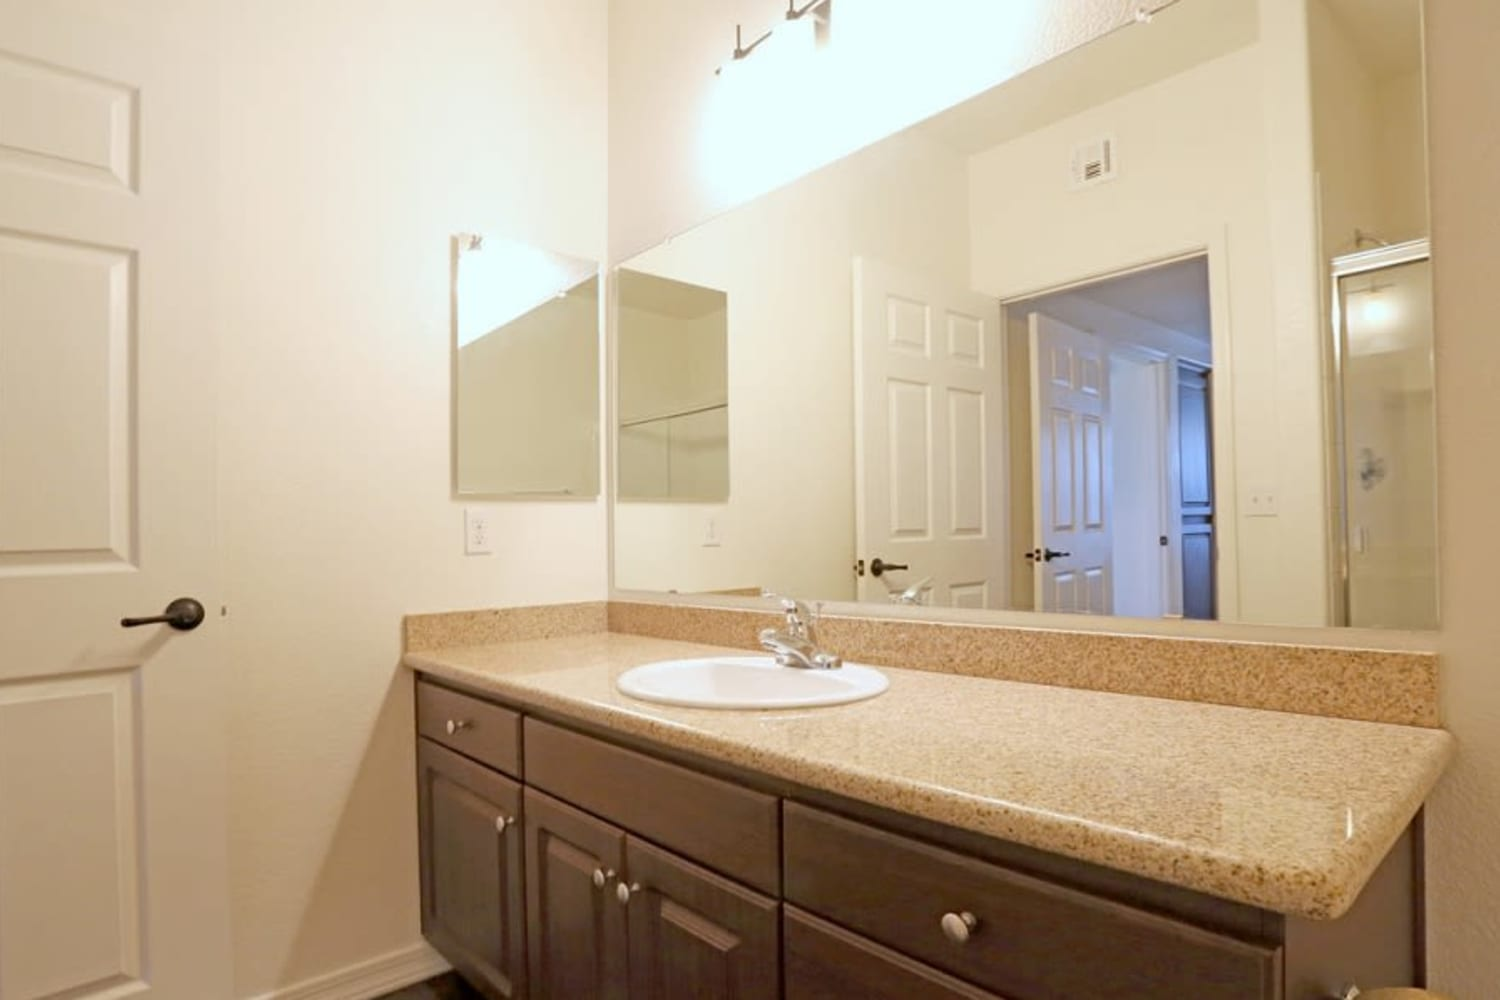 Bathroom with ample counter space at San Marquis in Tempe, Arizona